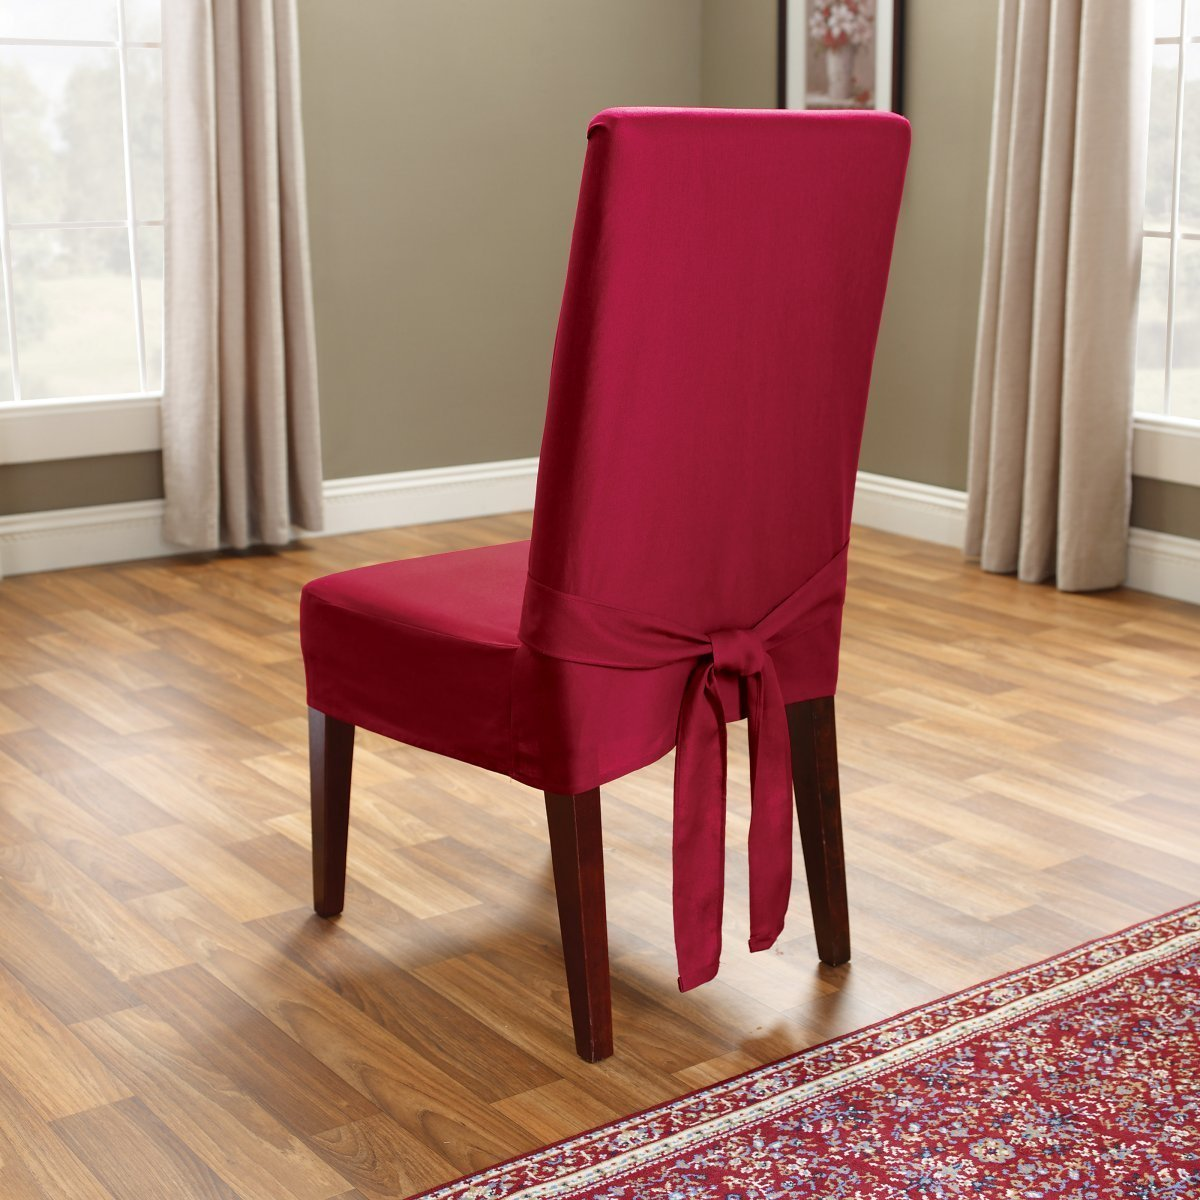 seat covers for kitchen chairs home furniture design. Black Bedroom Furniture Sets. Home Design Ideas